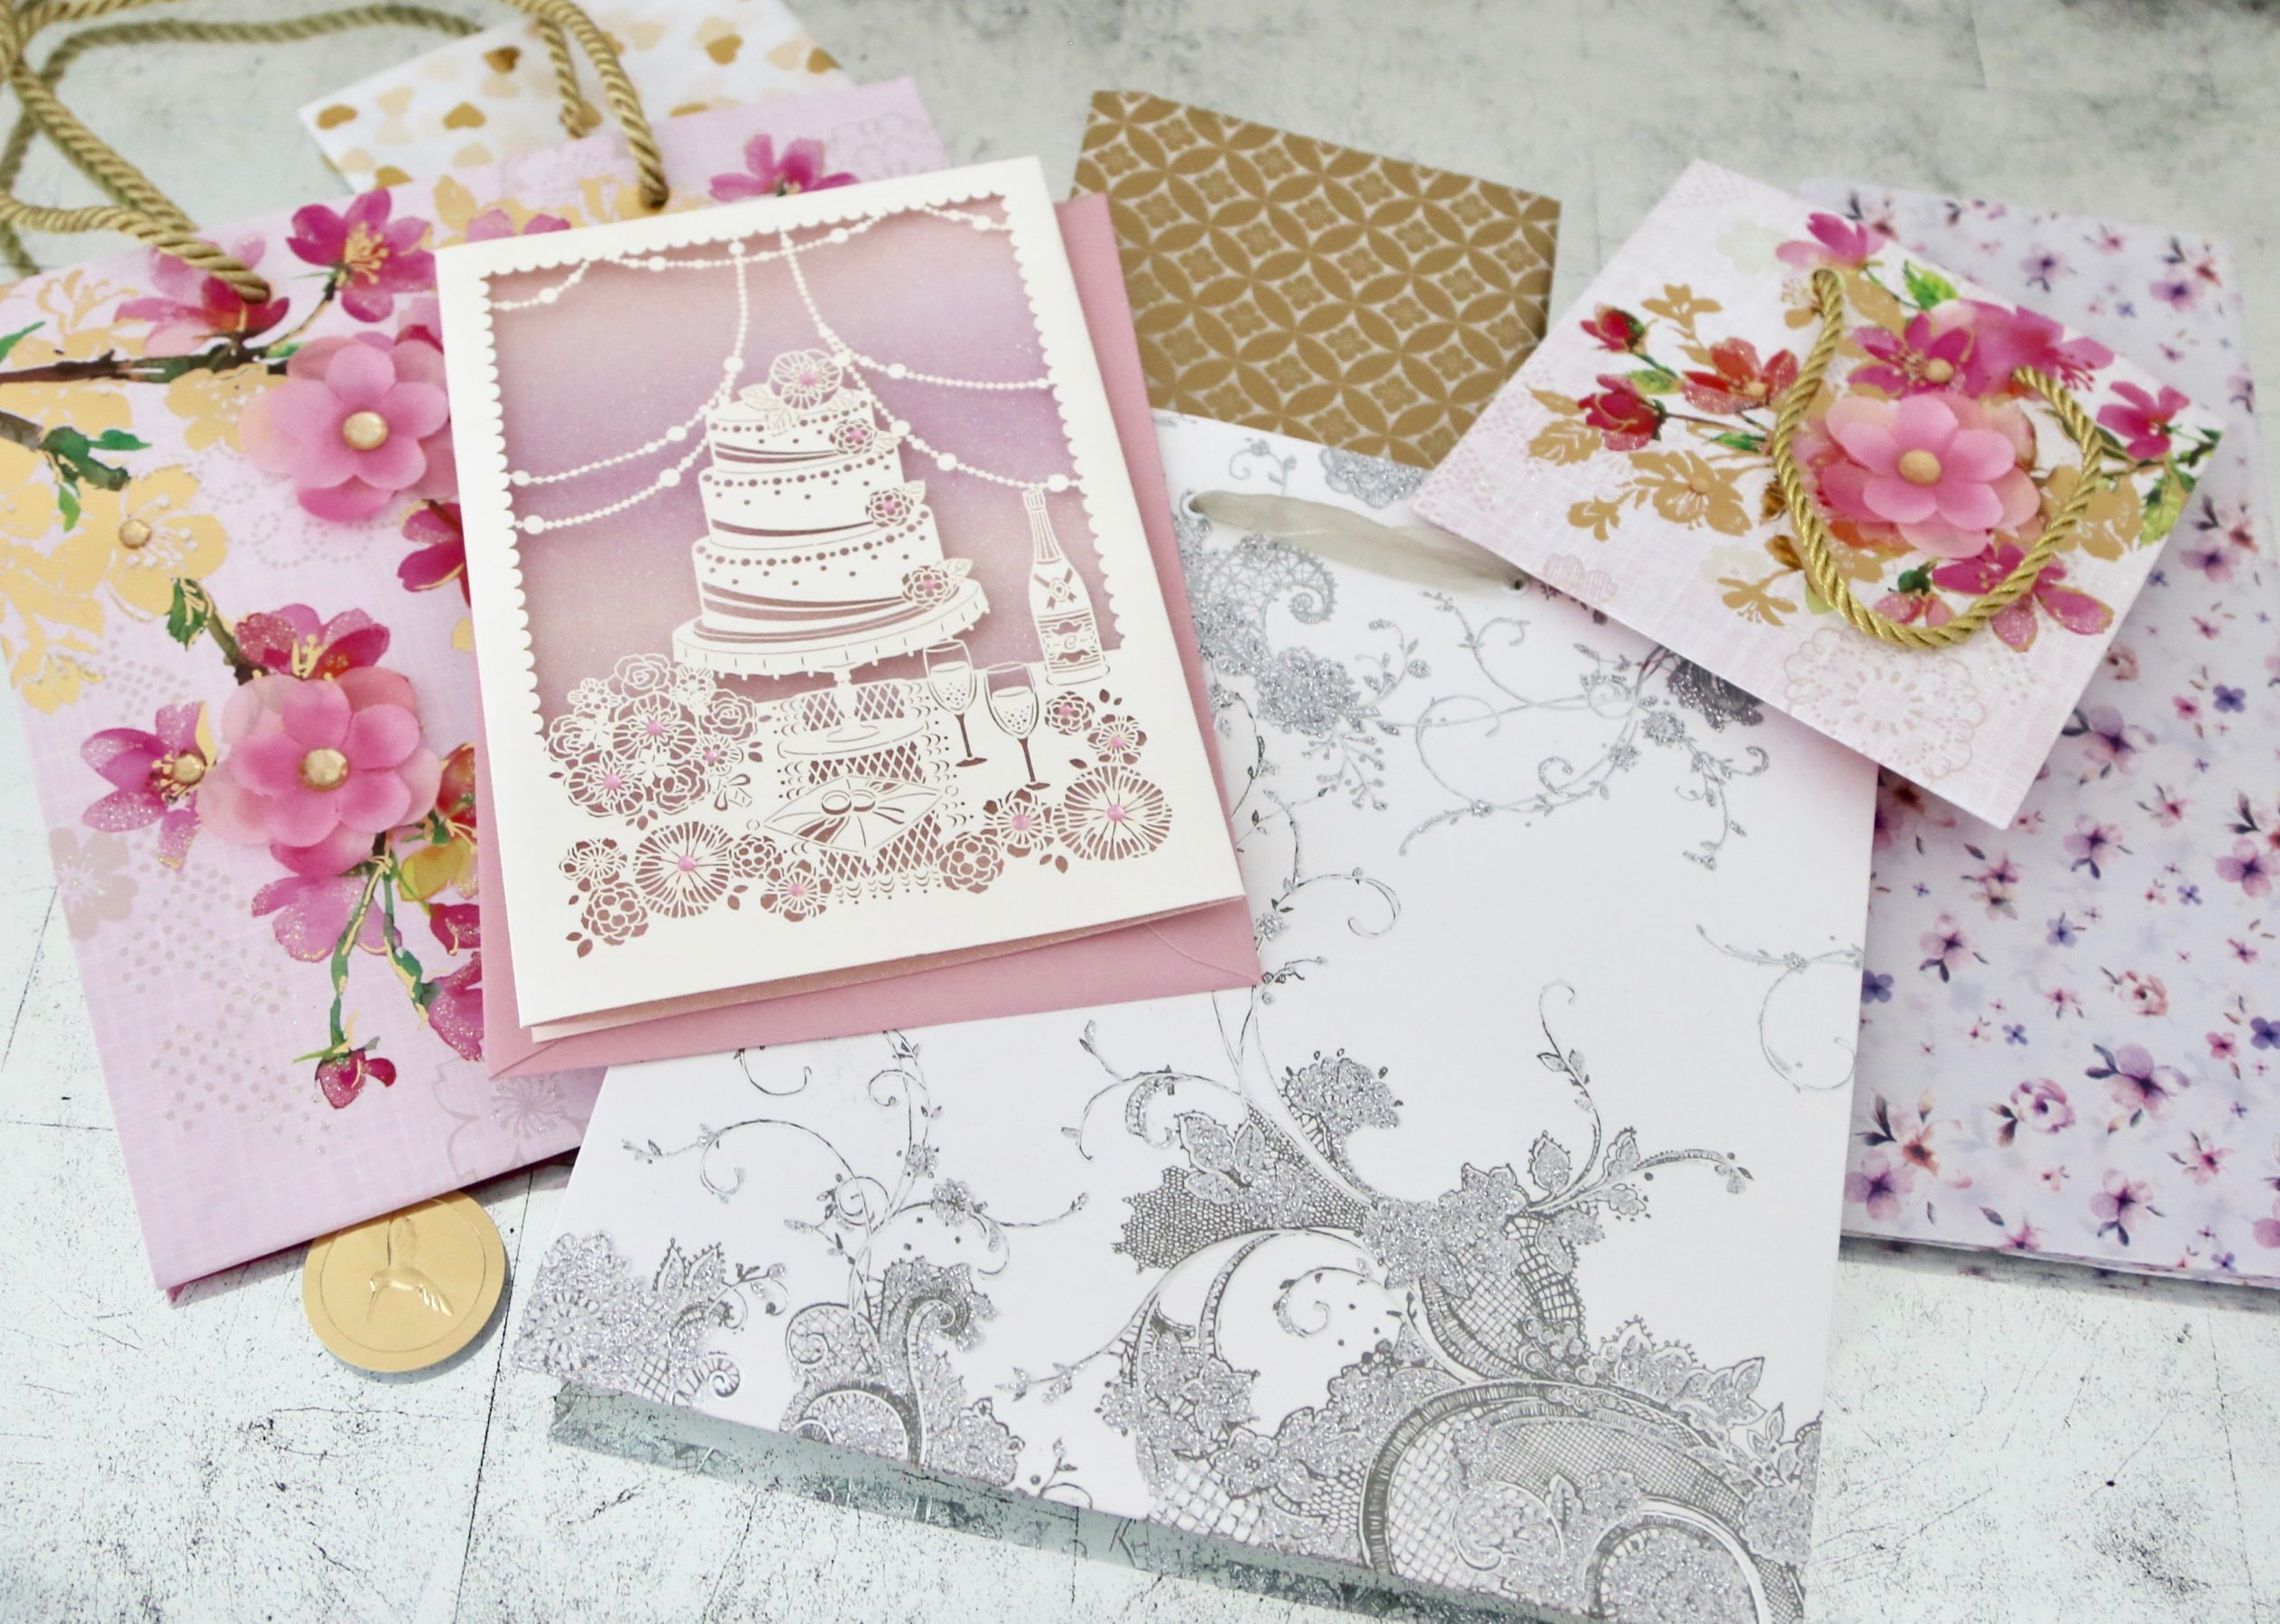 Papyrus Wedding Invitations: Wedding Season Ready With Papyrus!